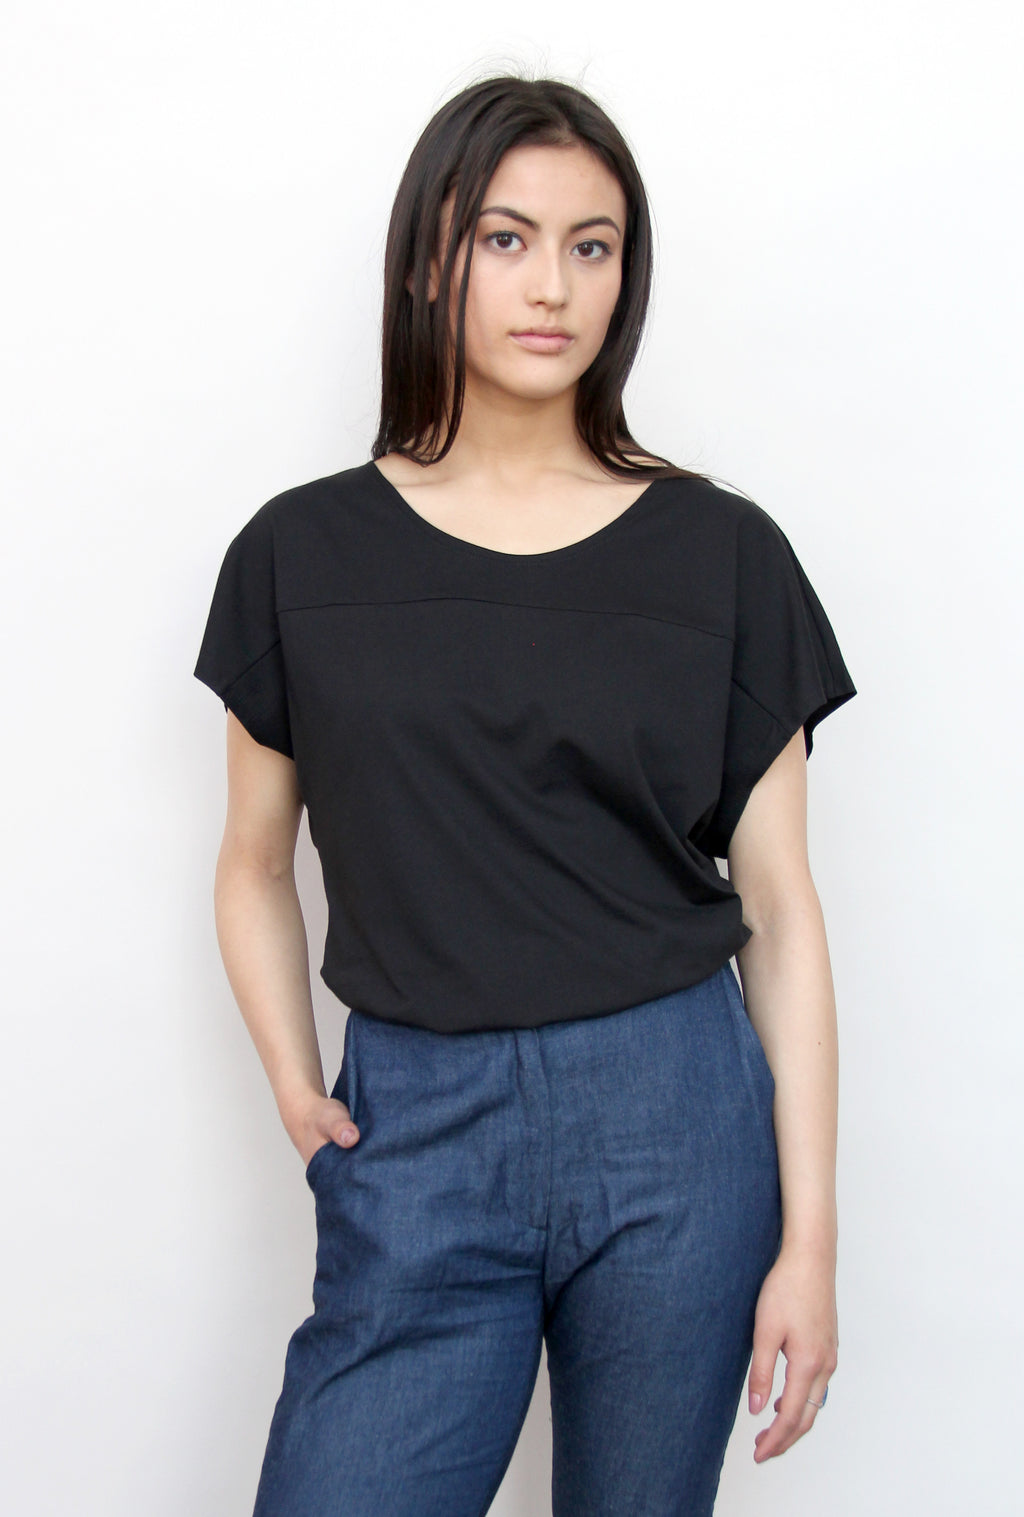 Women's Yoke Tee - Black